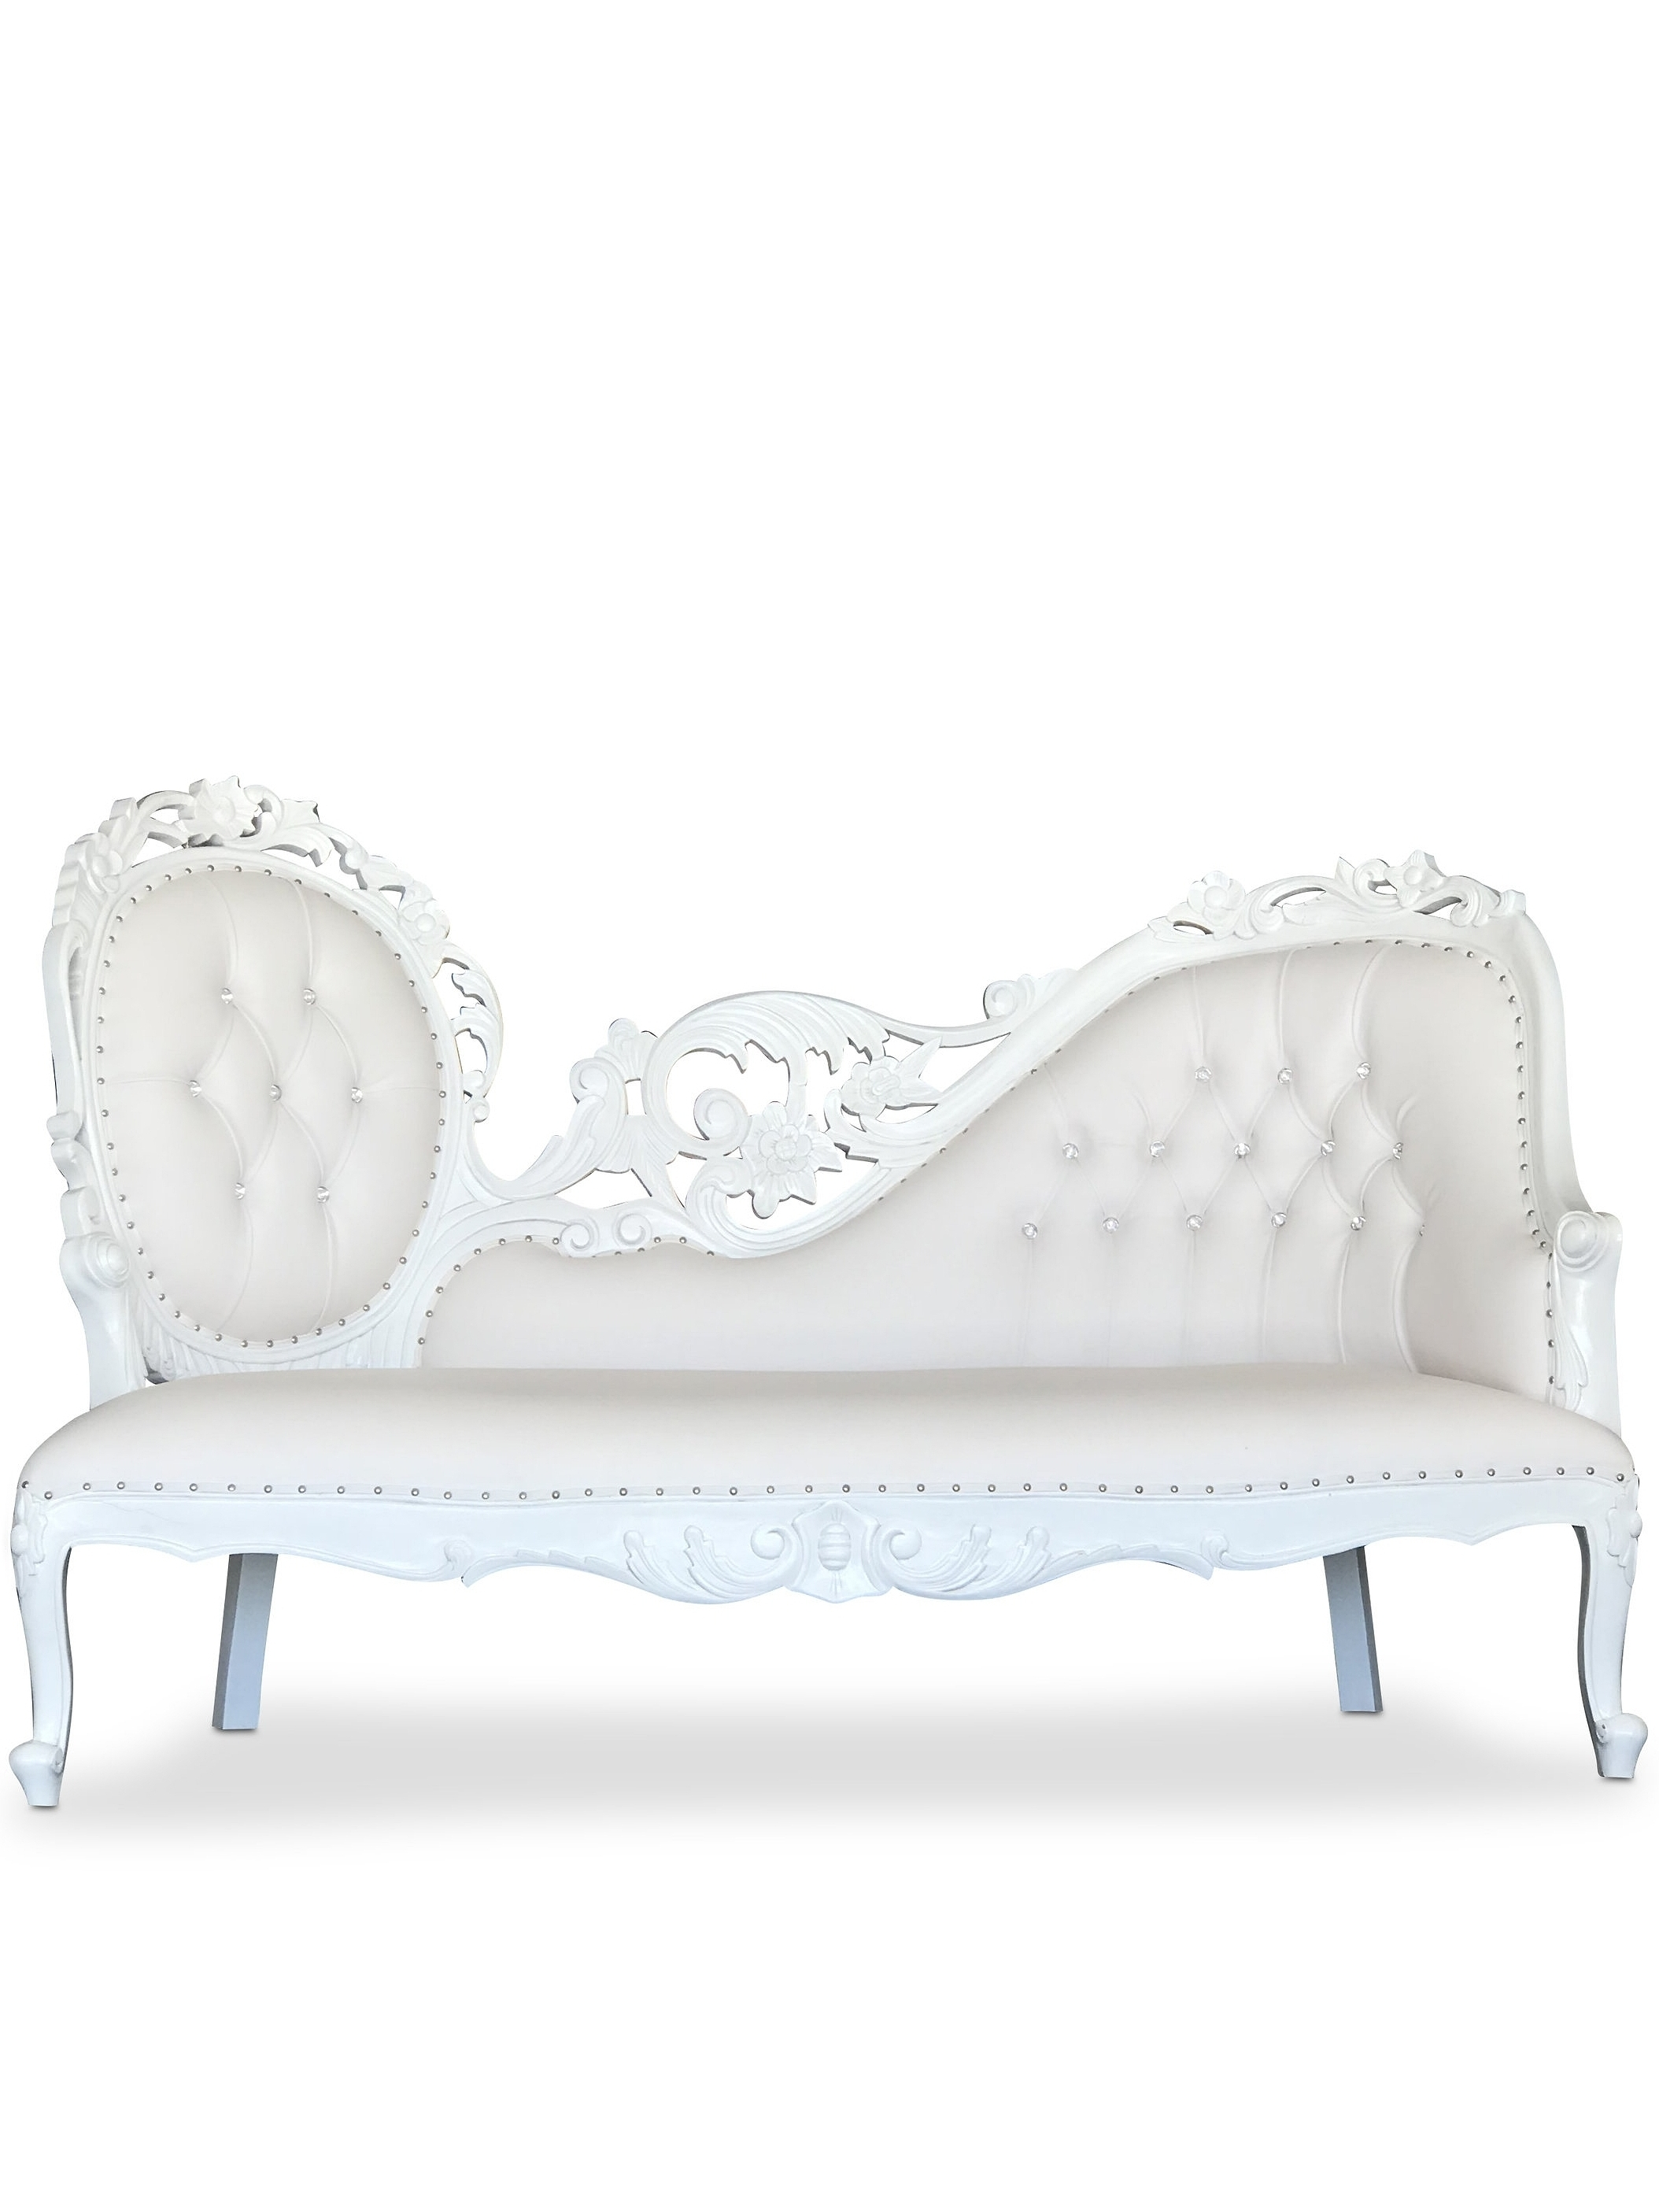 Luxury Chaise